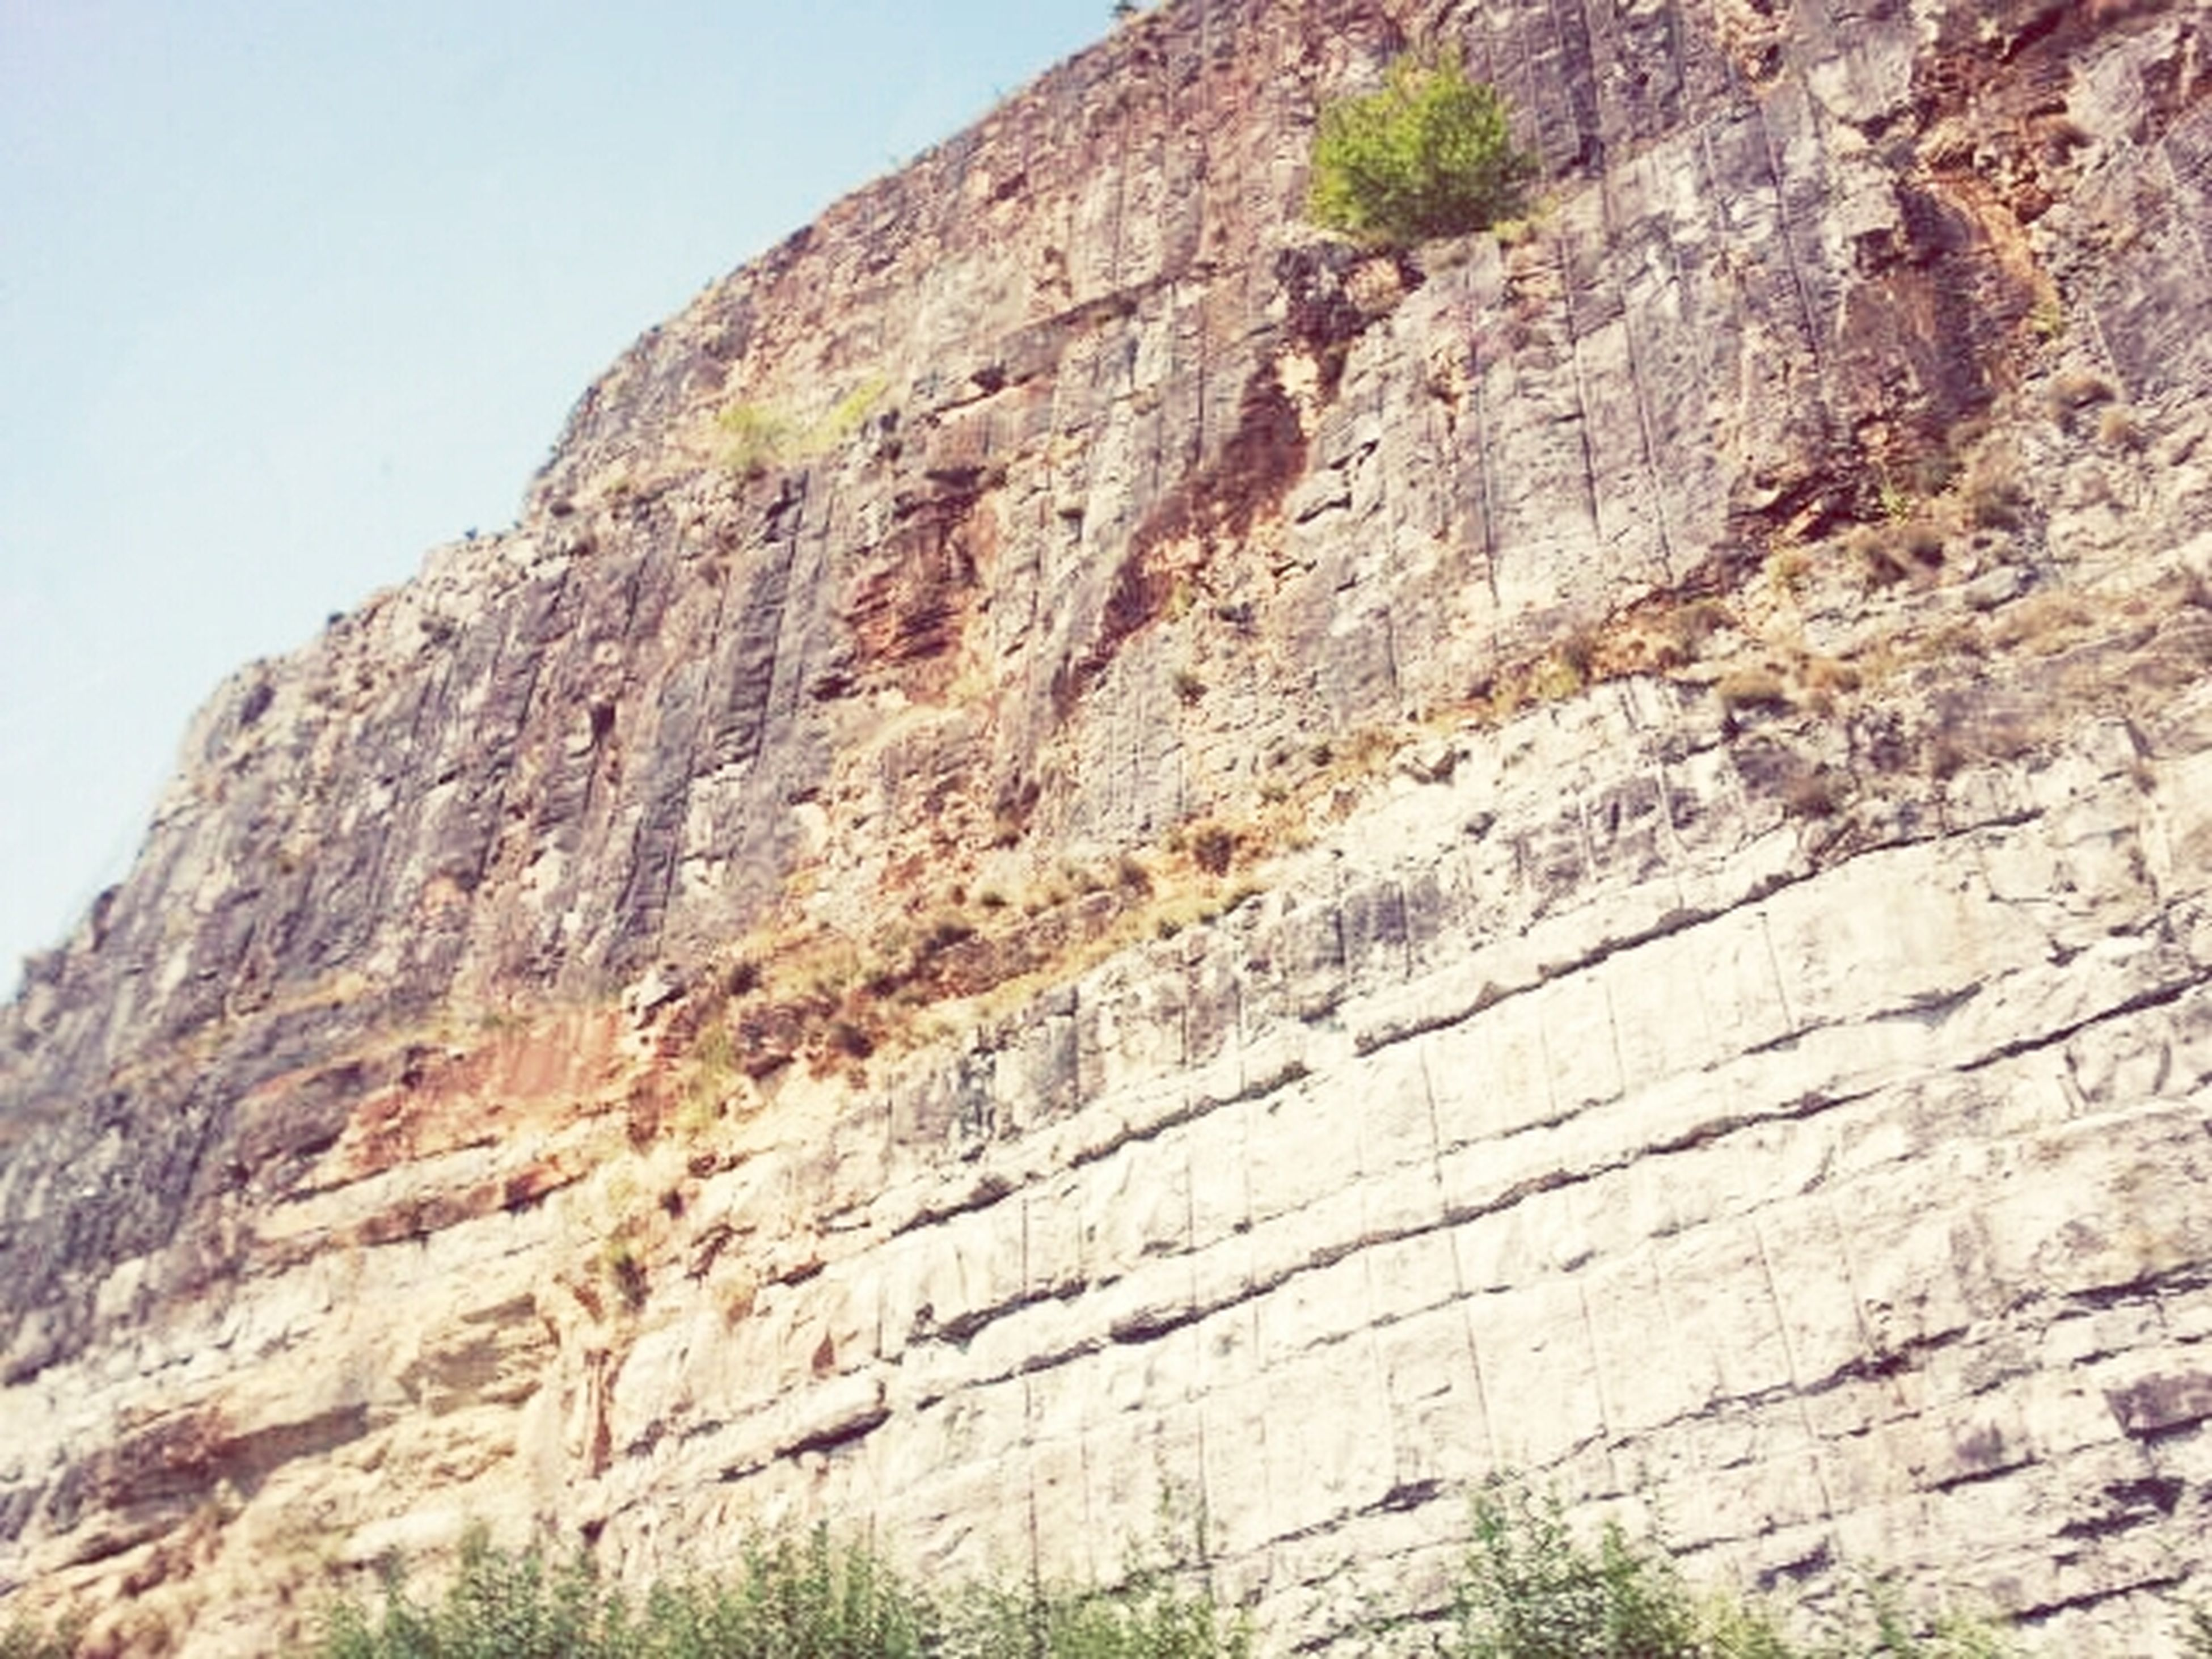 mountain, low angle view, rock formation, clear sky, rock - object, sky, tranquility, nature, rough, rocky mountains, tranquil scene, beauty in nature, day, textured, scenics, non-urban scene, tree, outdoors, geology, landscape